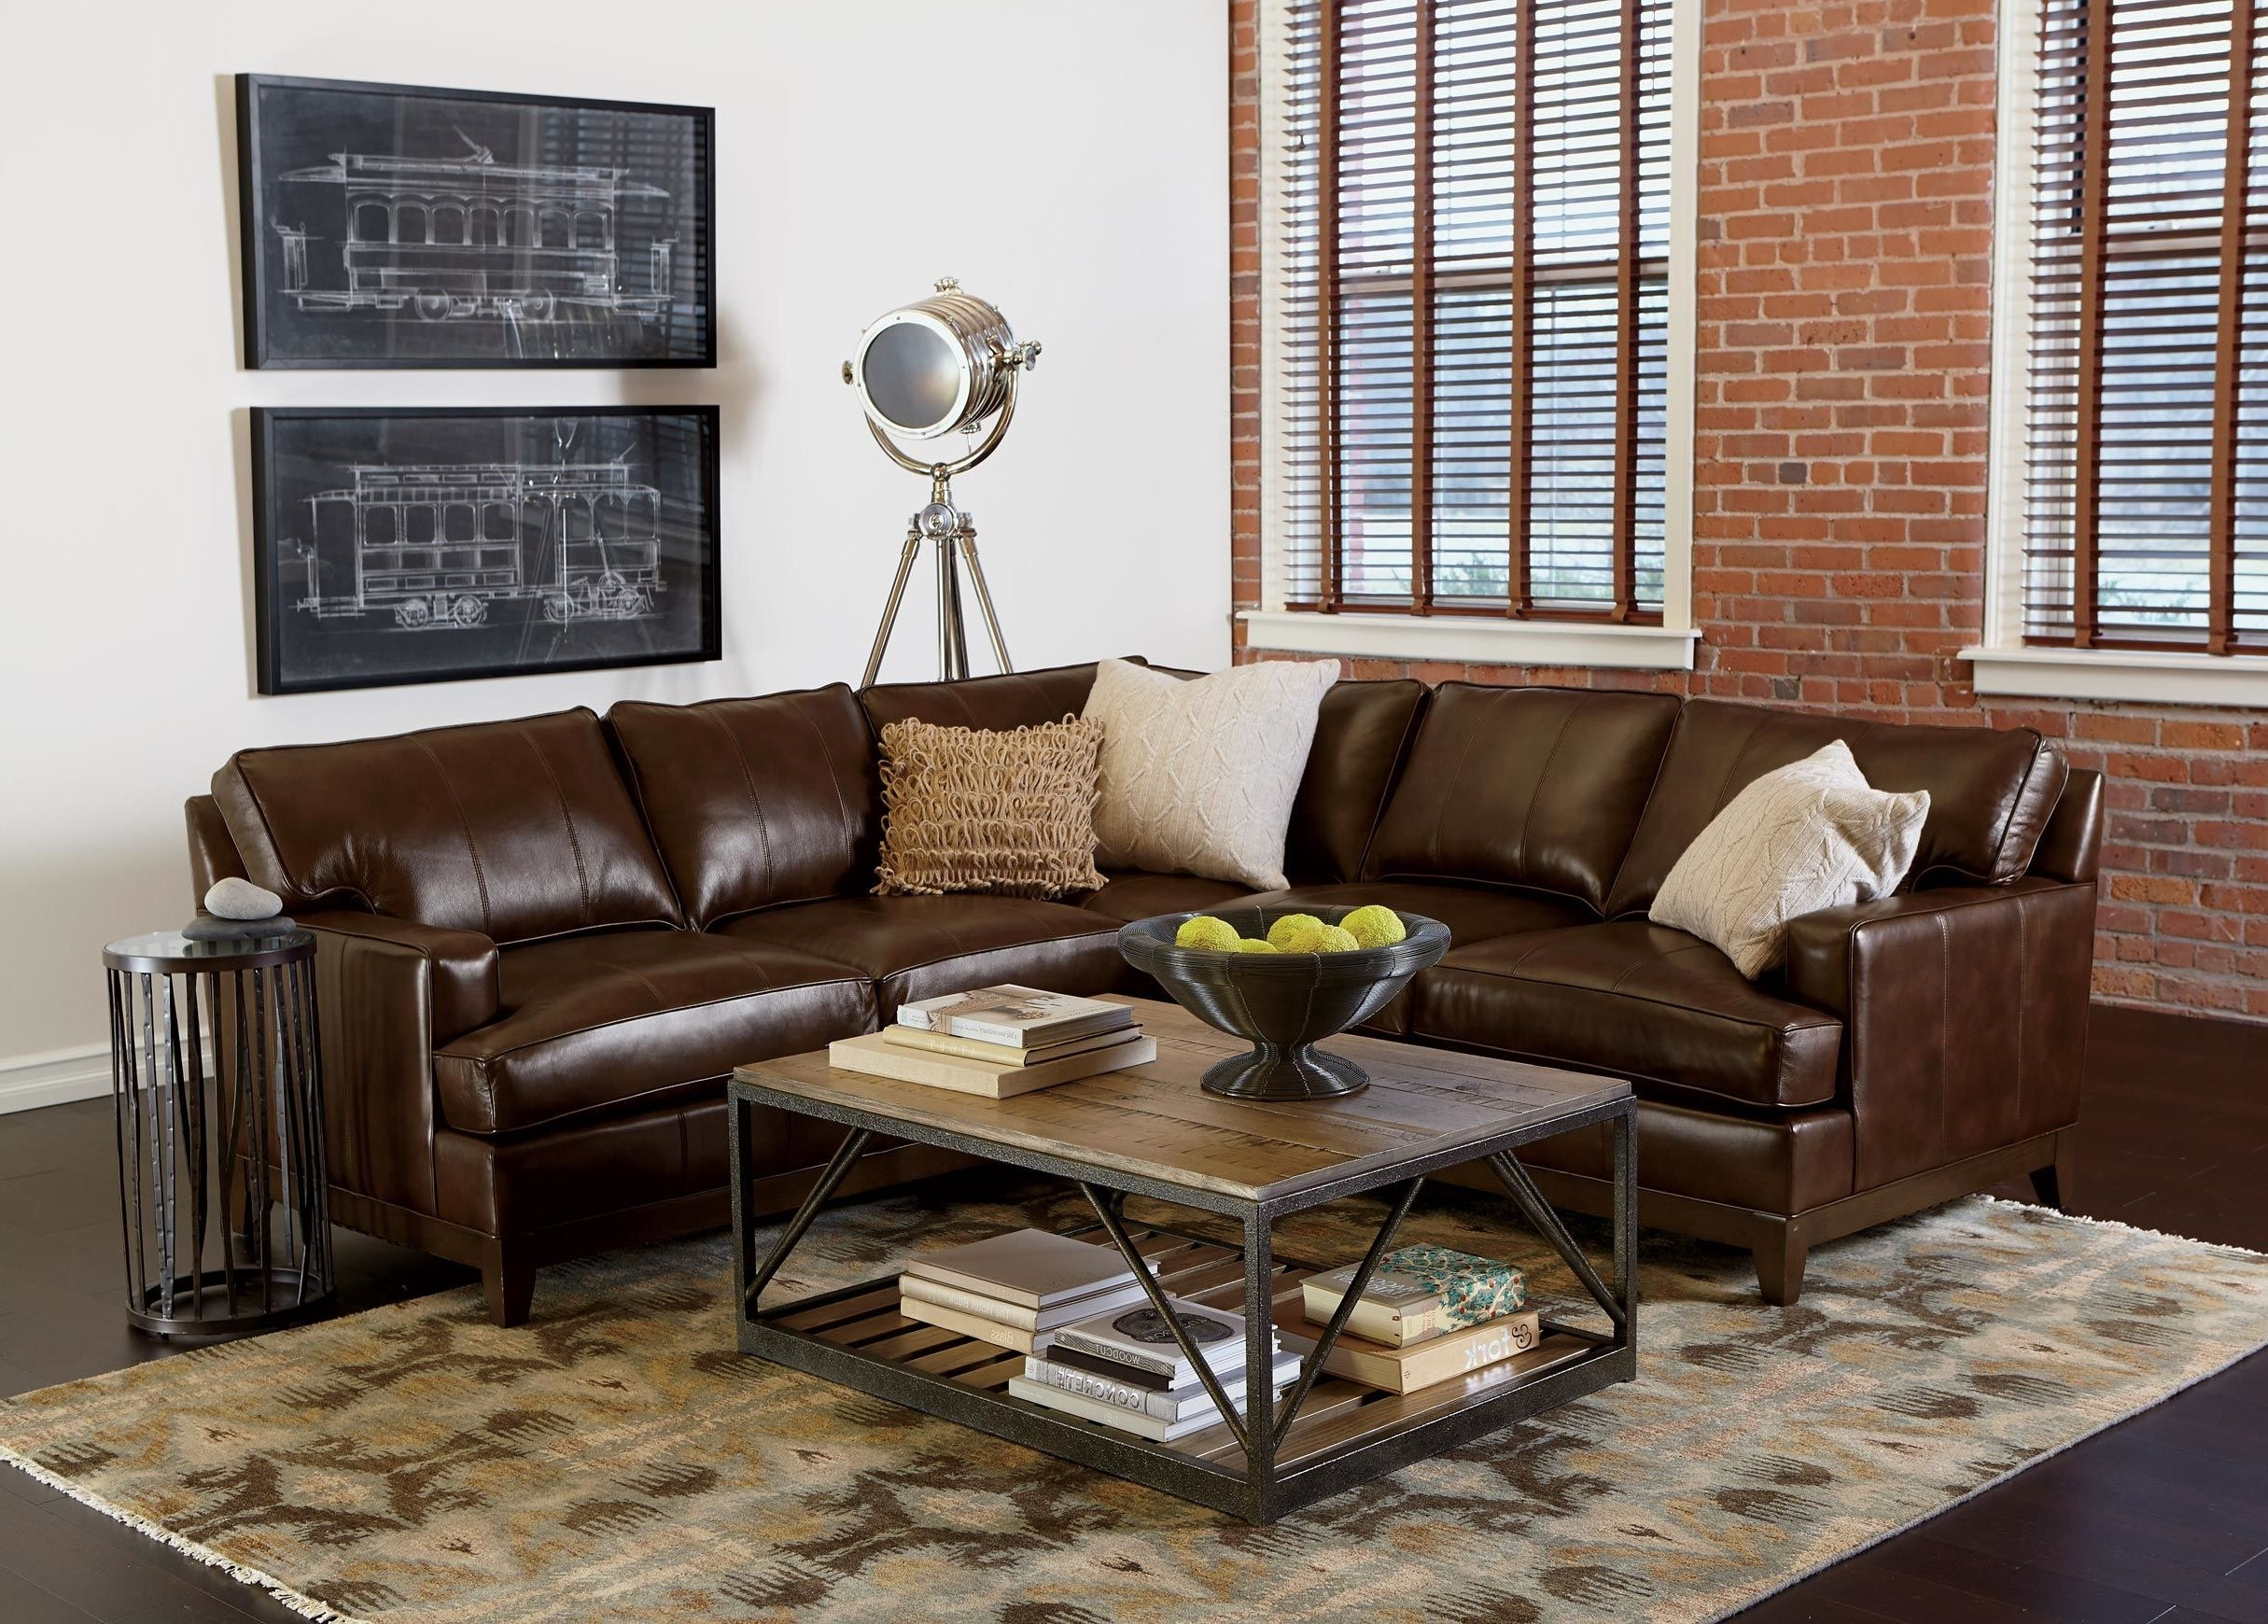 Furniture: Elegant Brown Ethan Allen Sectional Sofas Furniture In A in Sectional Sofas at Ethan Allen (Image 5 of 10)